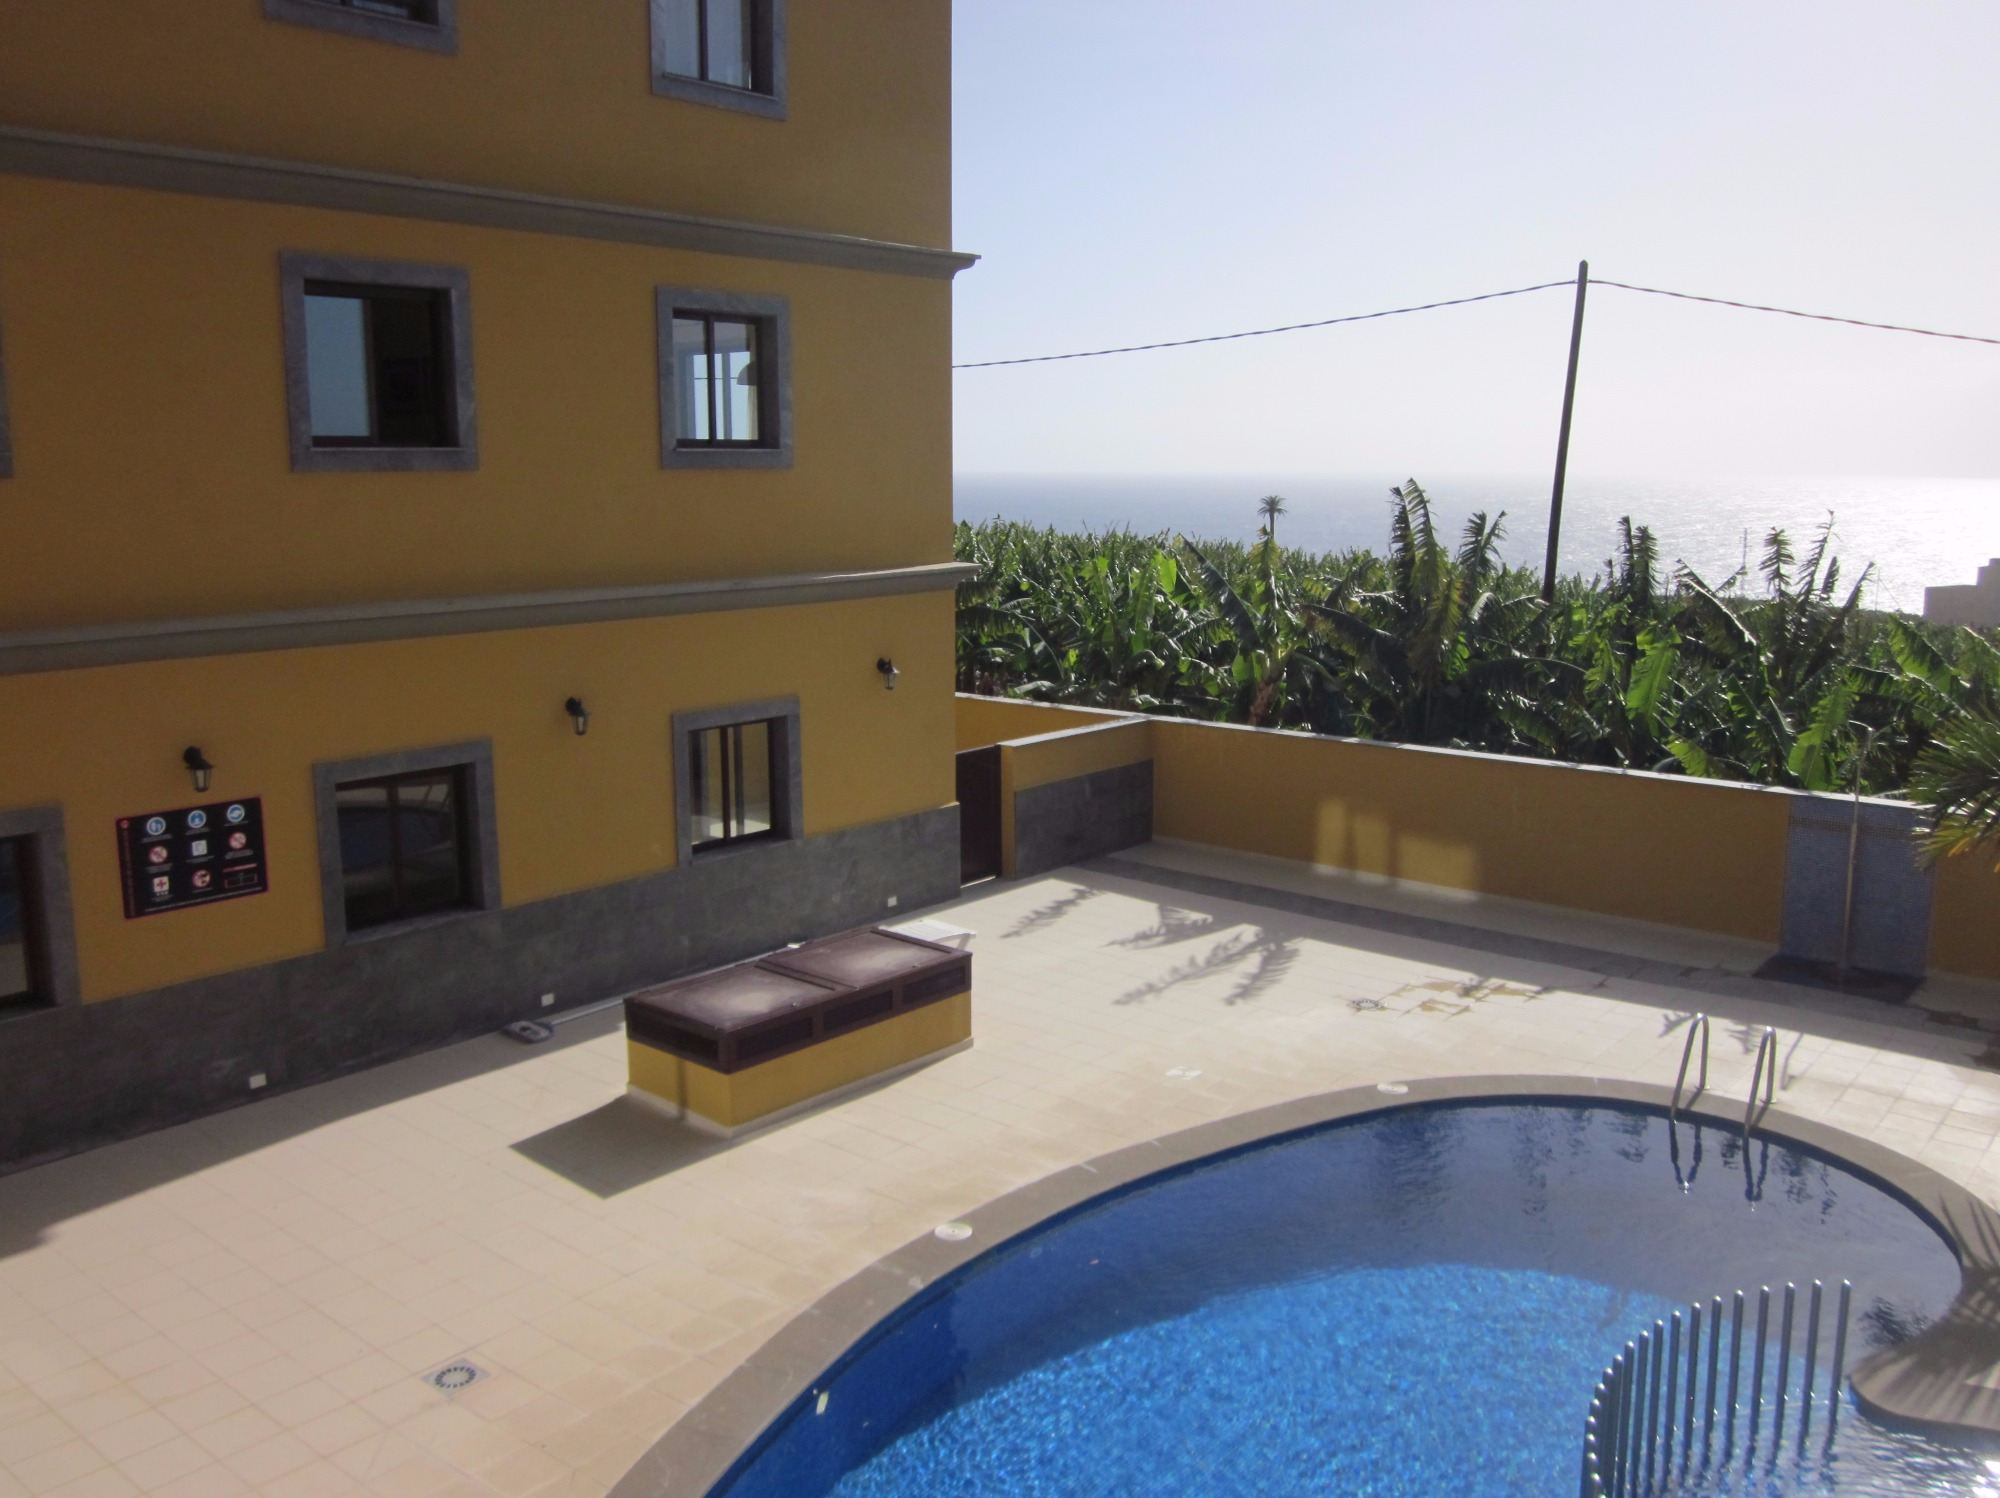 self-catering holiday apartment to rent tazacorte la palma canary islands